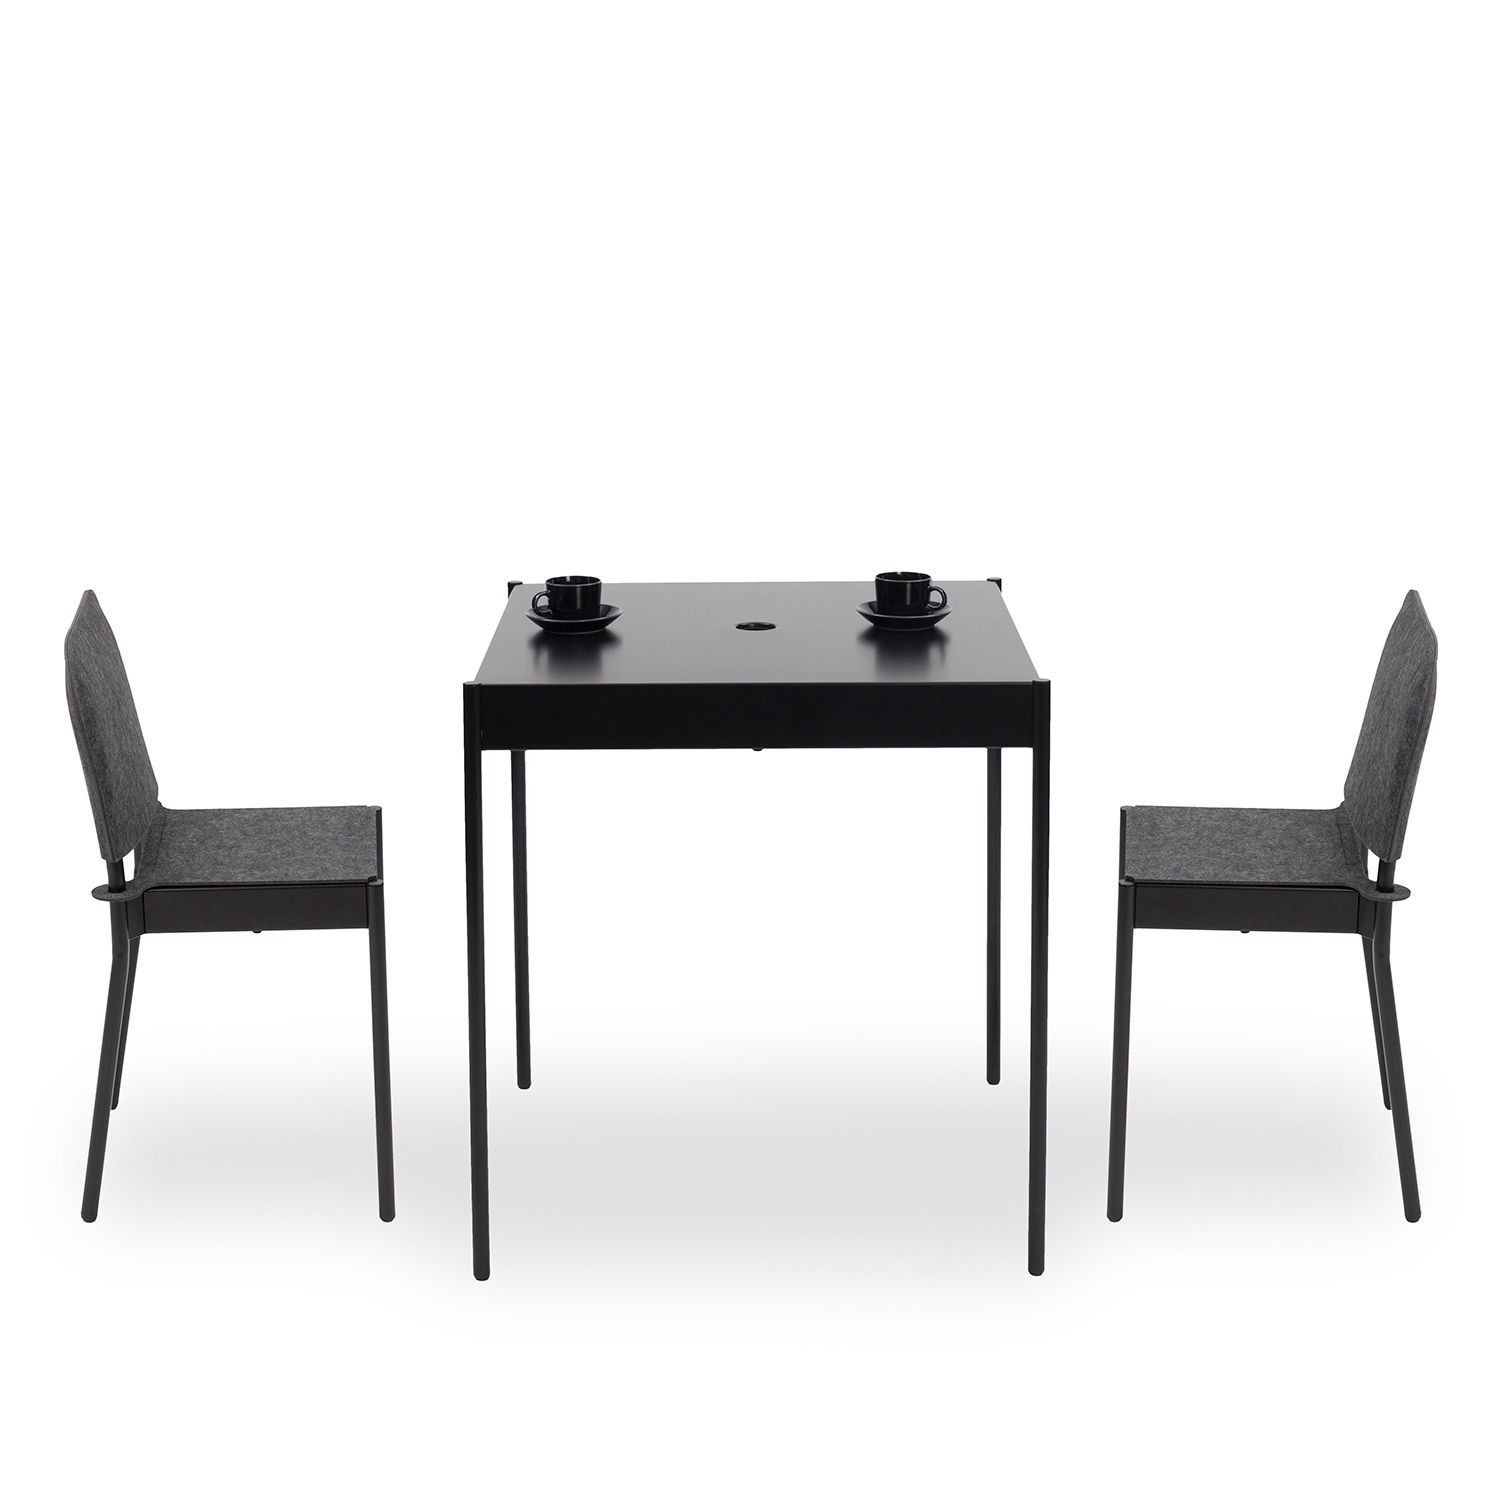 La Table Stackable Table T/670x670 | Black RAL 9005